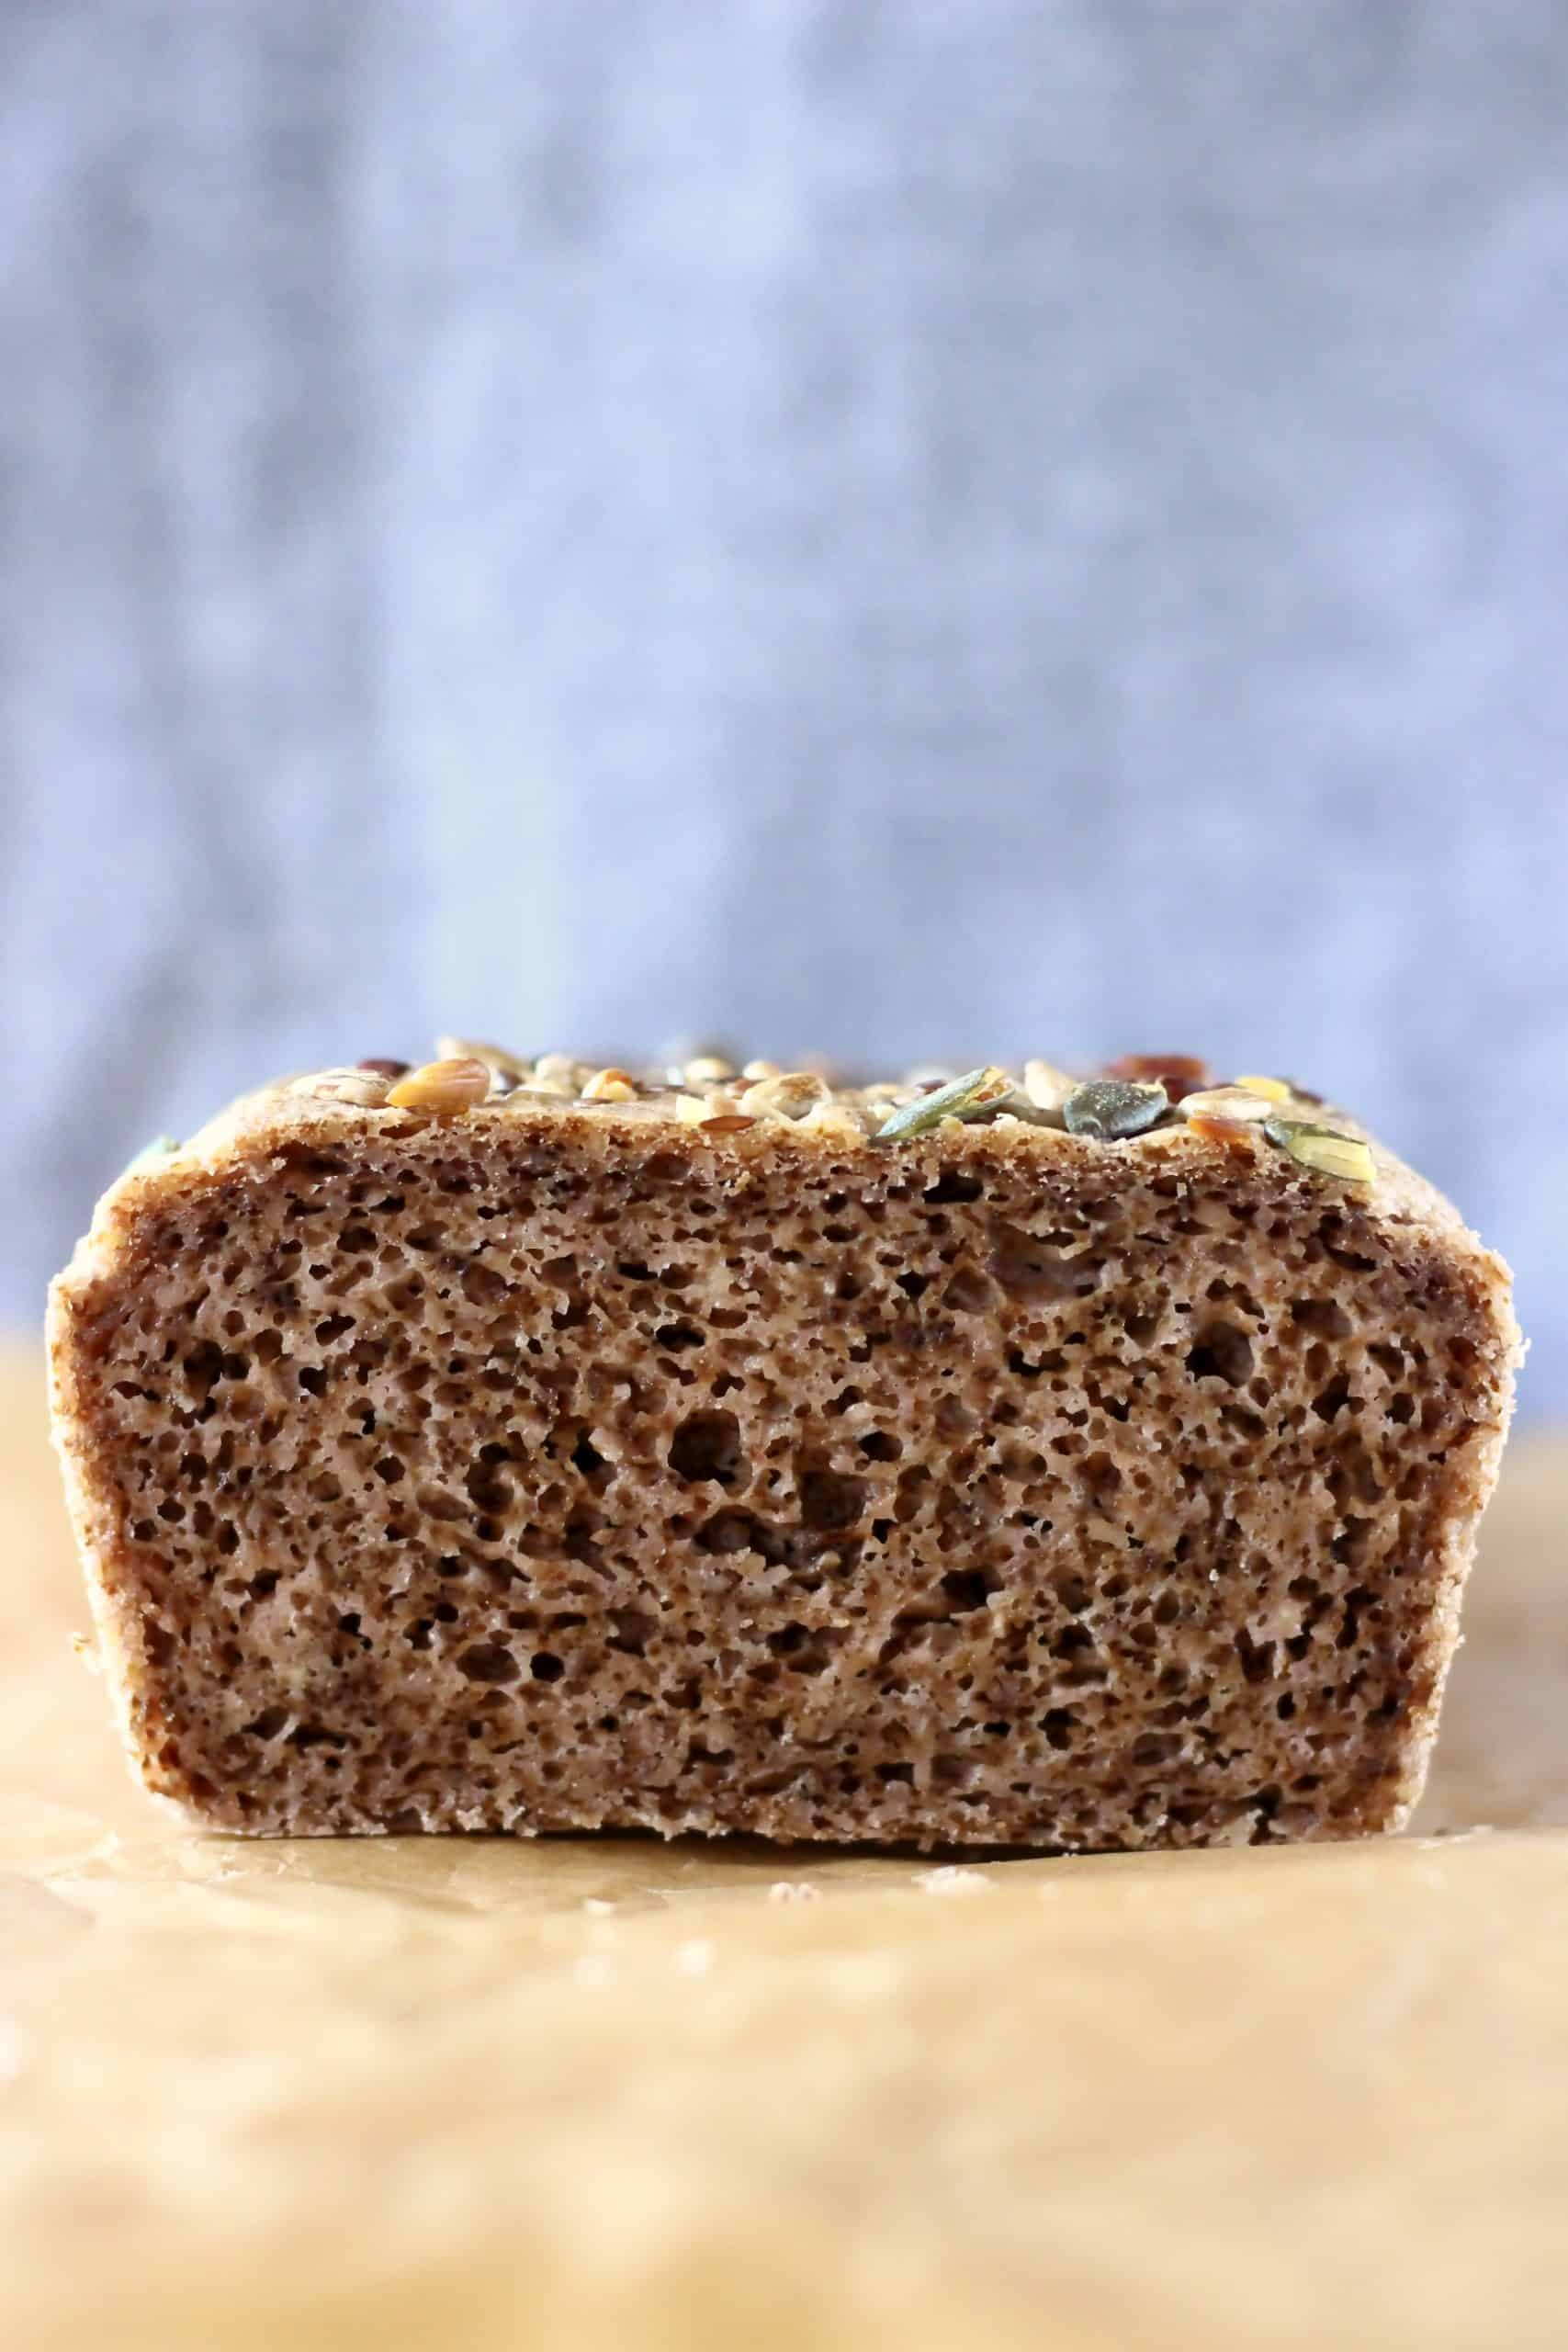 A sliced loaf of walnut bread on a sheet of brown baking paper against a grey background